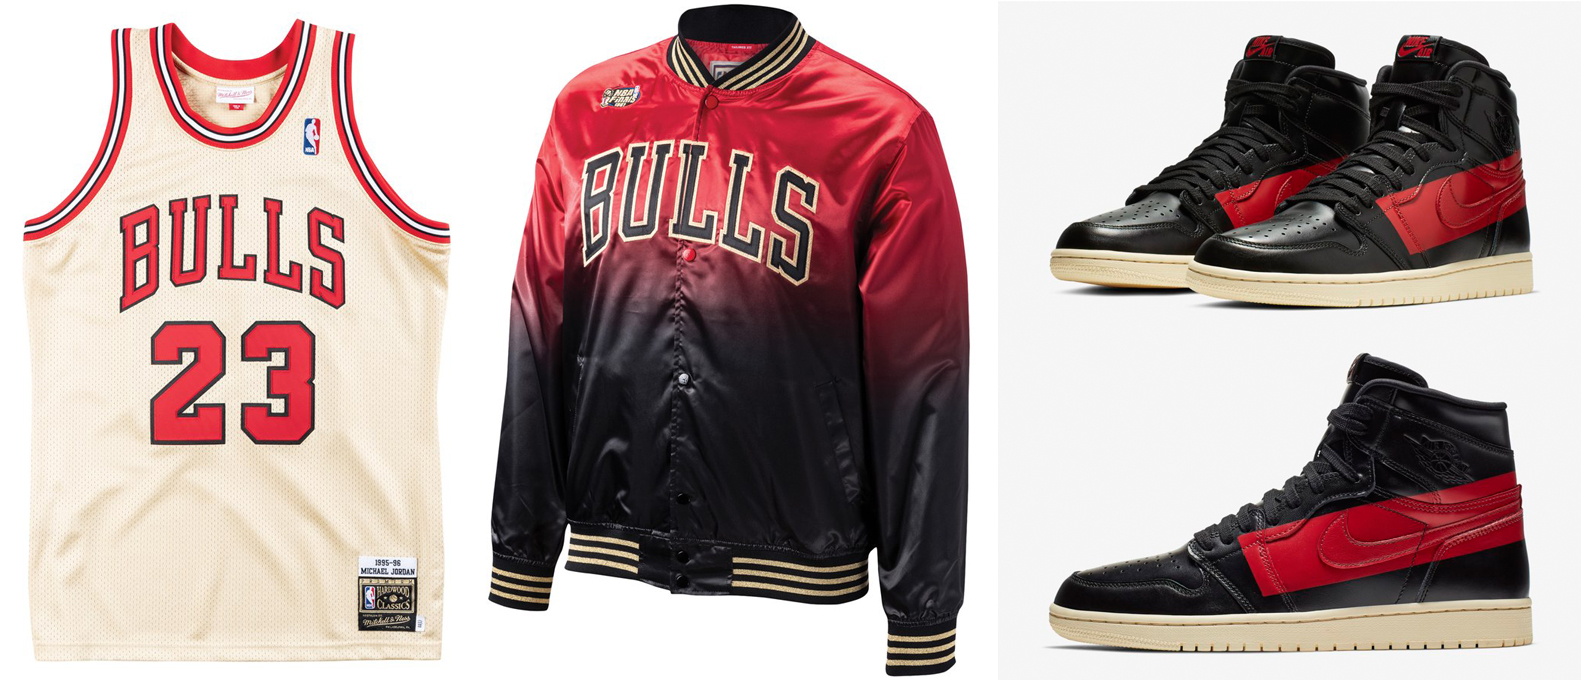 air-jordan-1-bulls-clothing-match